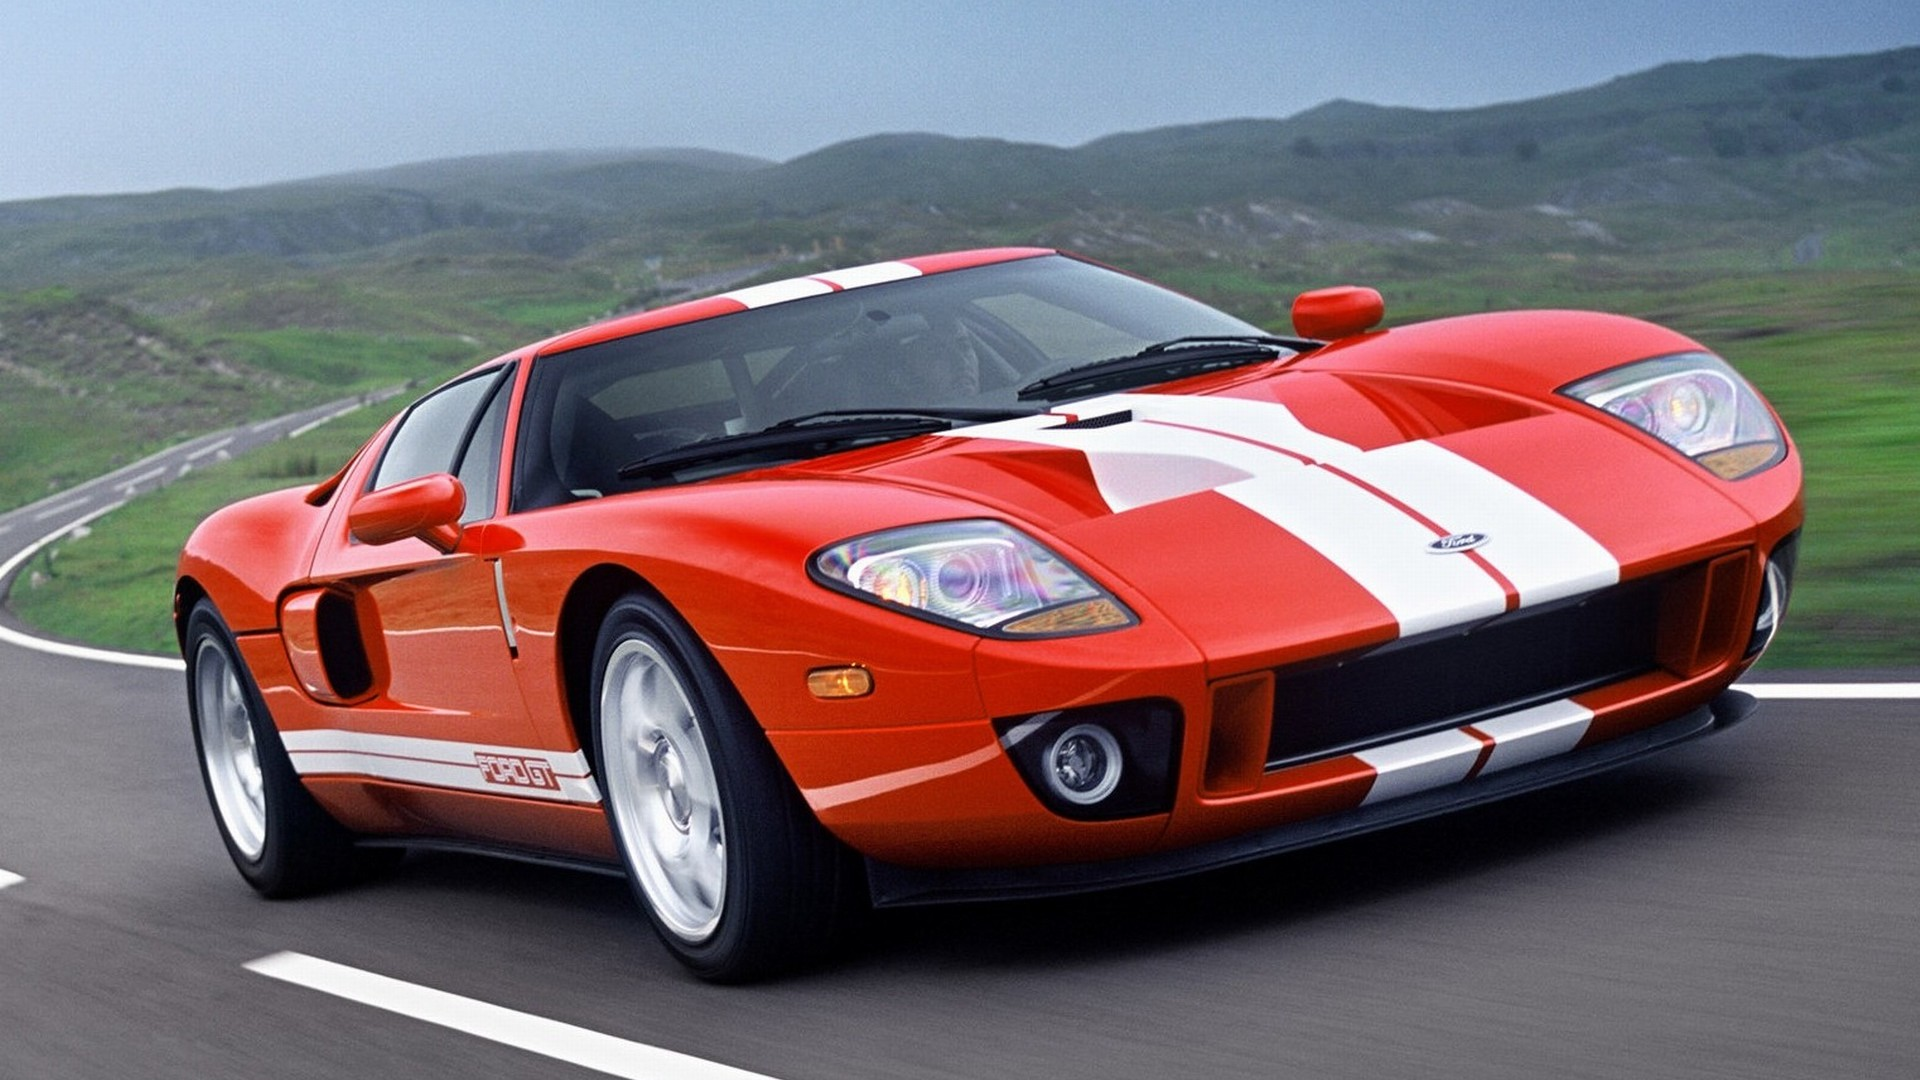 Ford GT 2005 01 1920x1080 WallpapersFord GT 1920x1080 Wallpapers 1920x1080